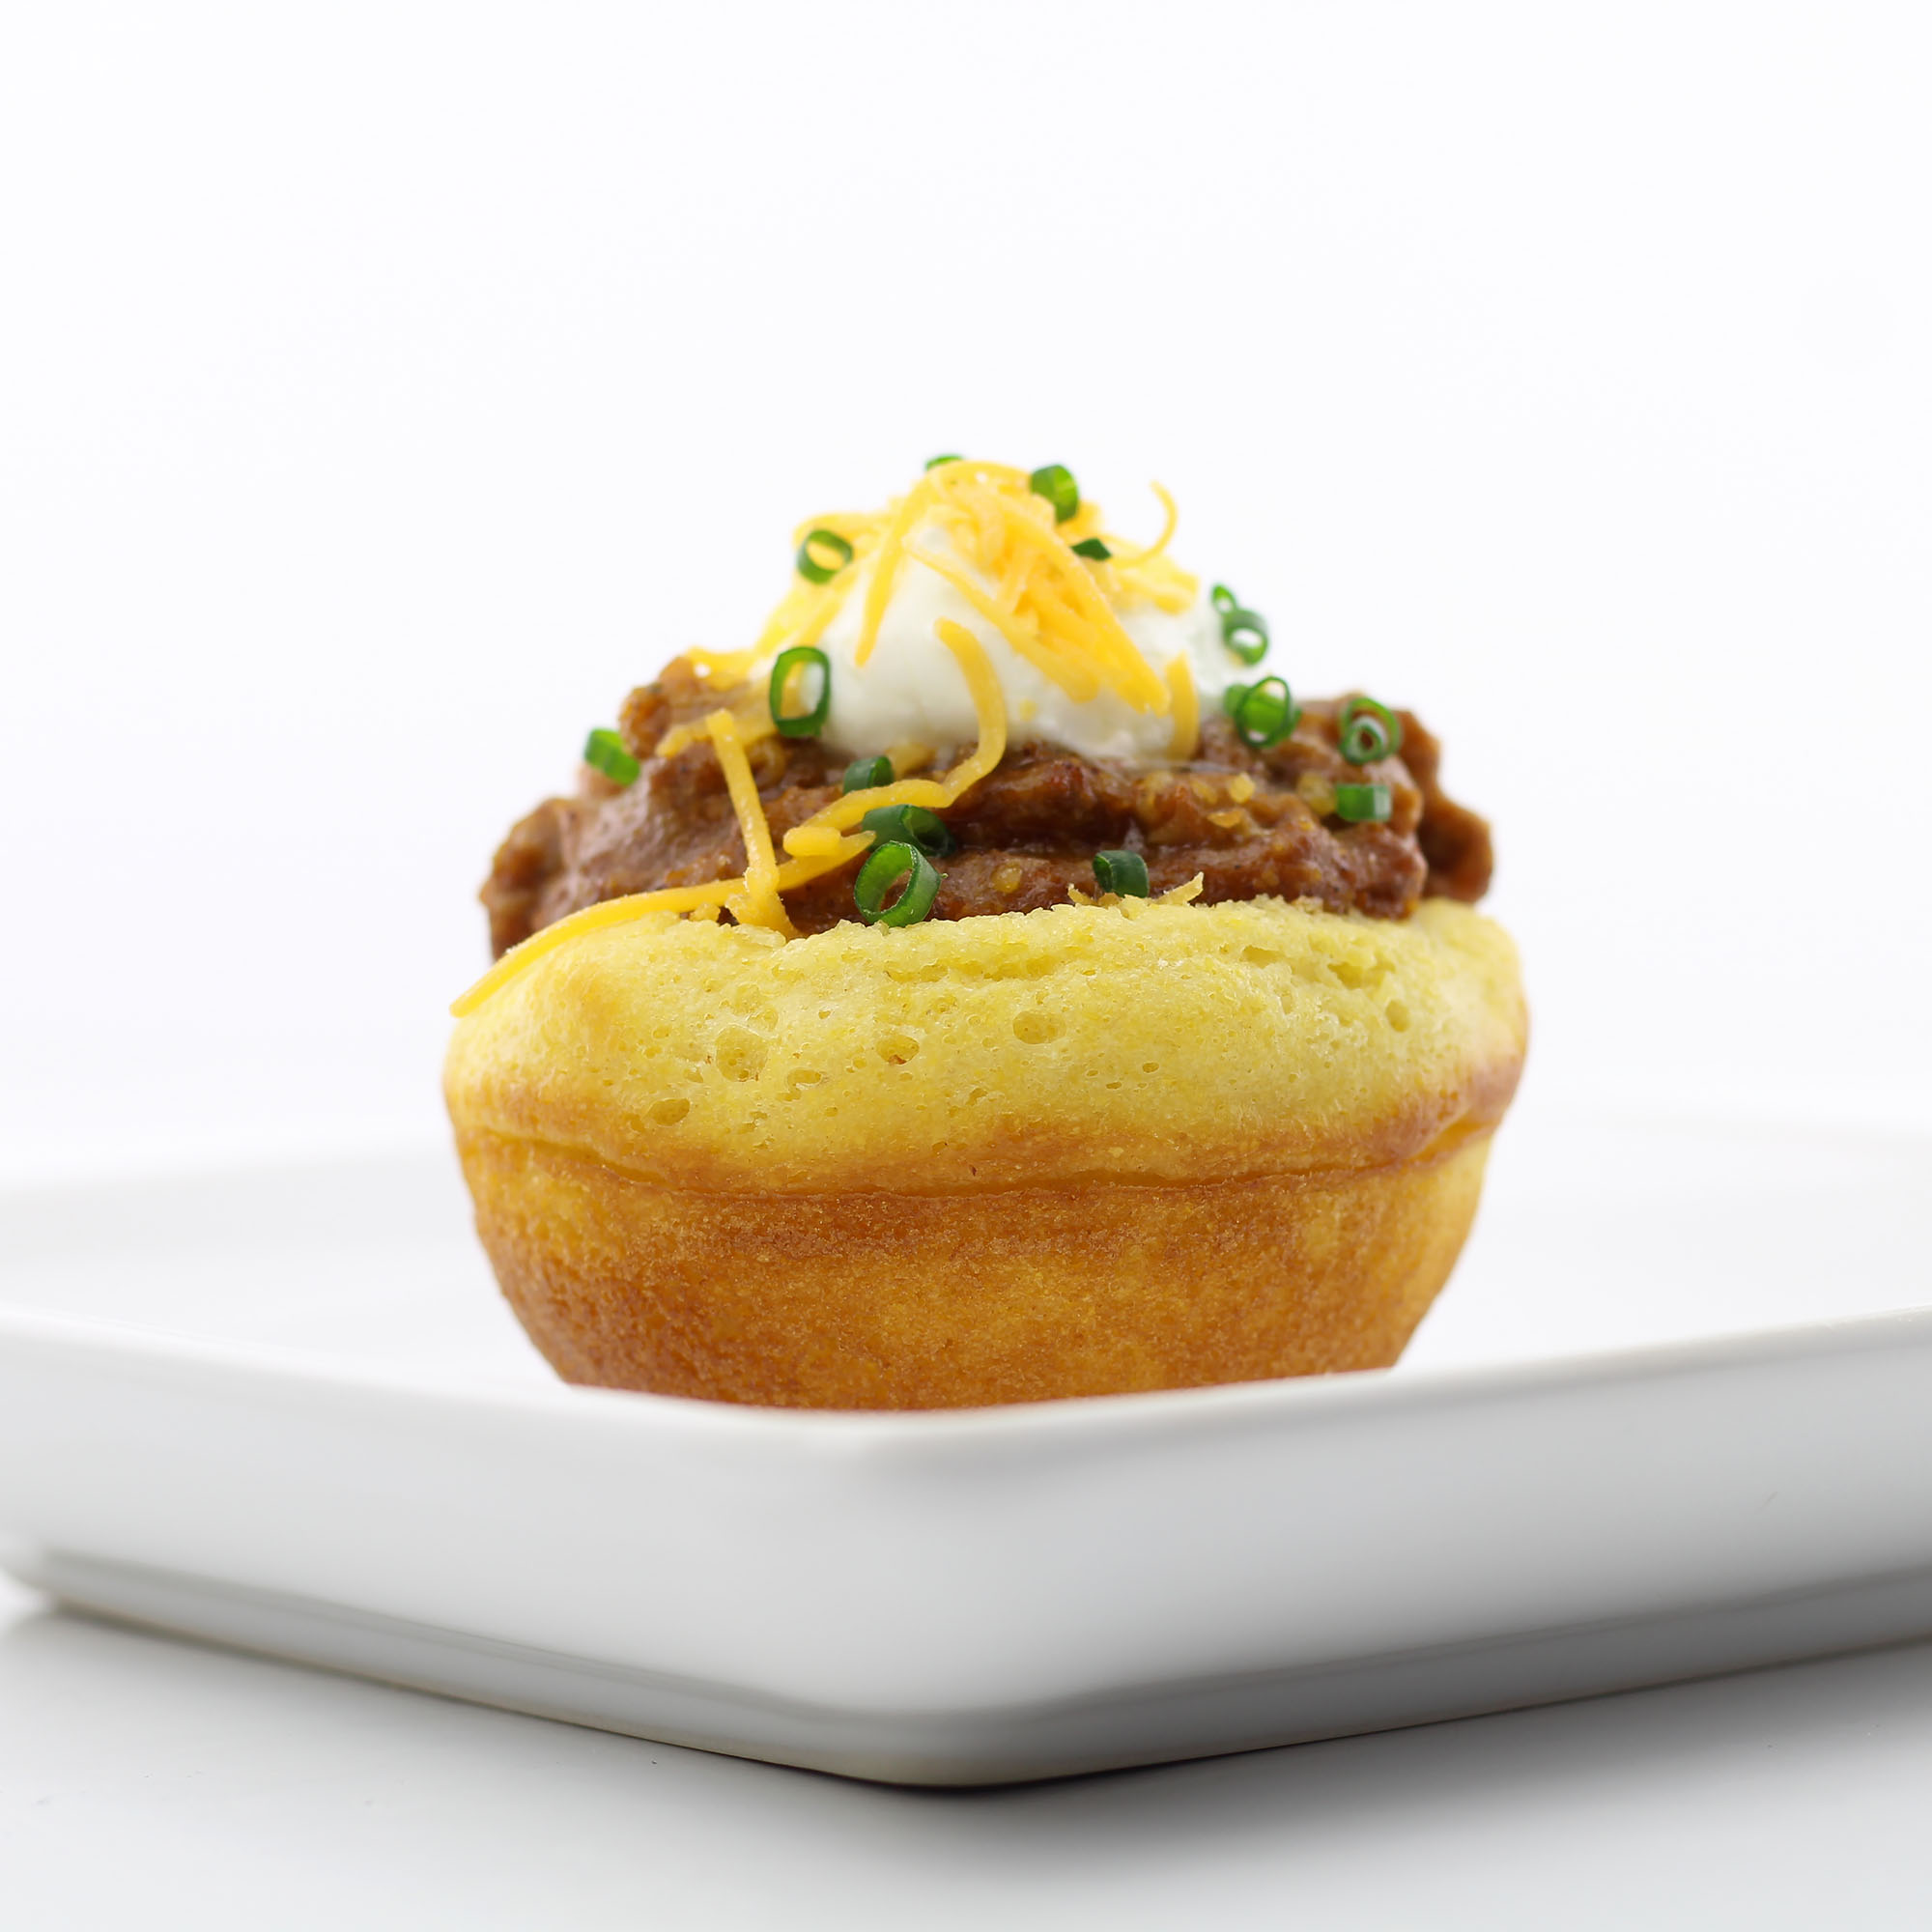 Chili in Edible Cornbread Bowls